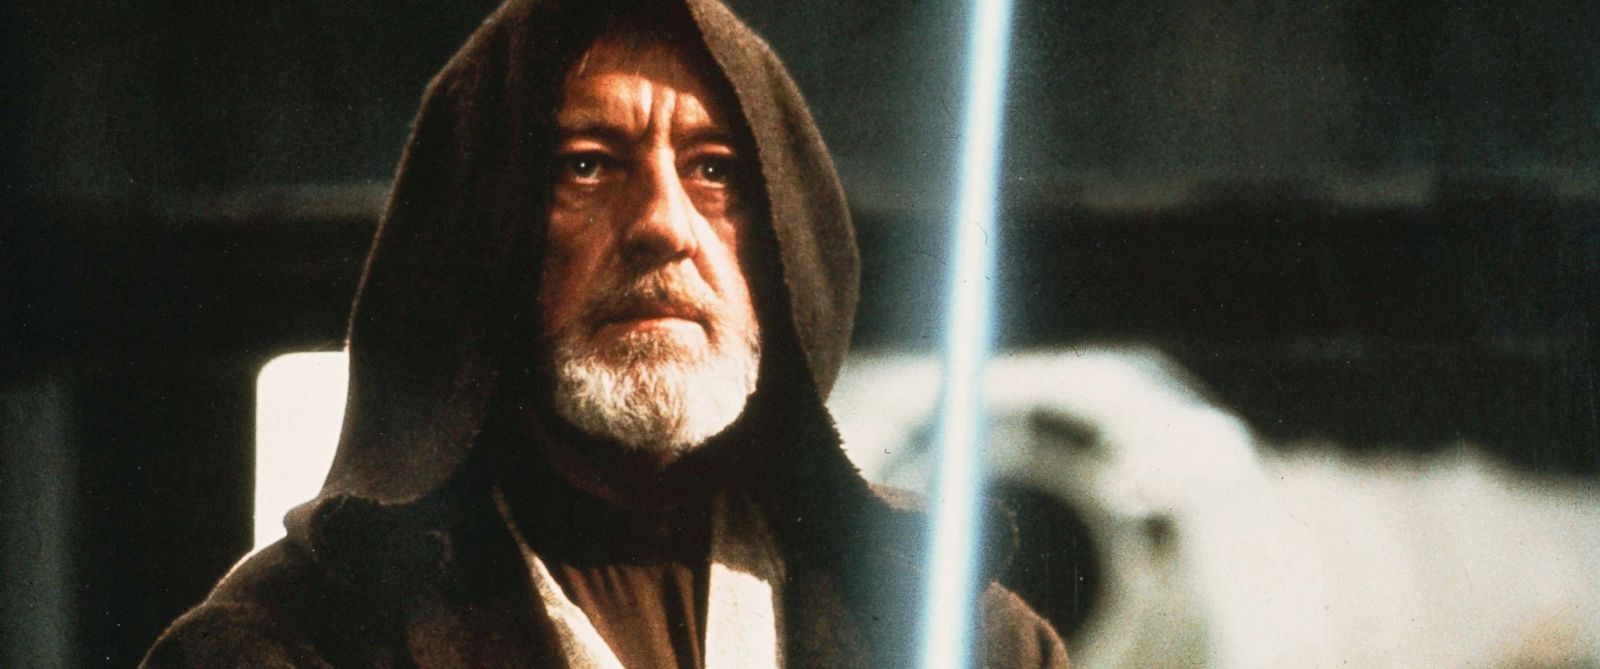 "PHOTO: Obi Wan Kenobi, portrayed by Alec Guinness, is seen in a scene from ""Star Wars IV: A New Hope."""